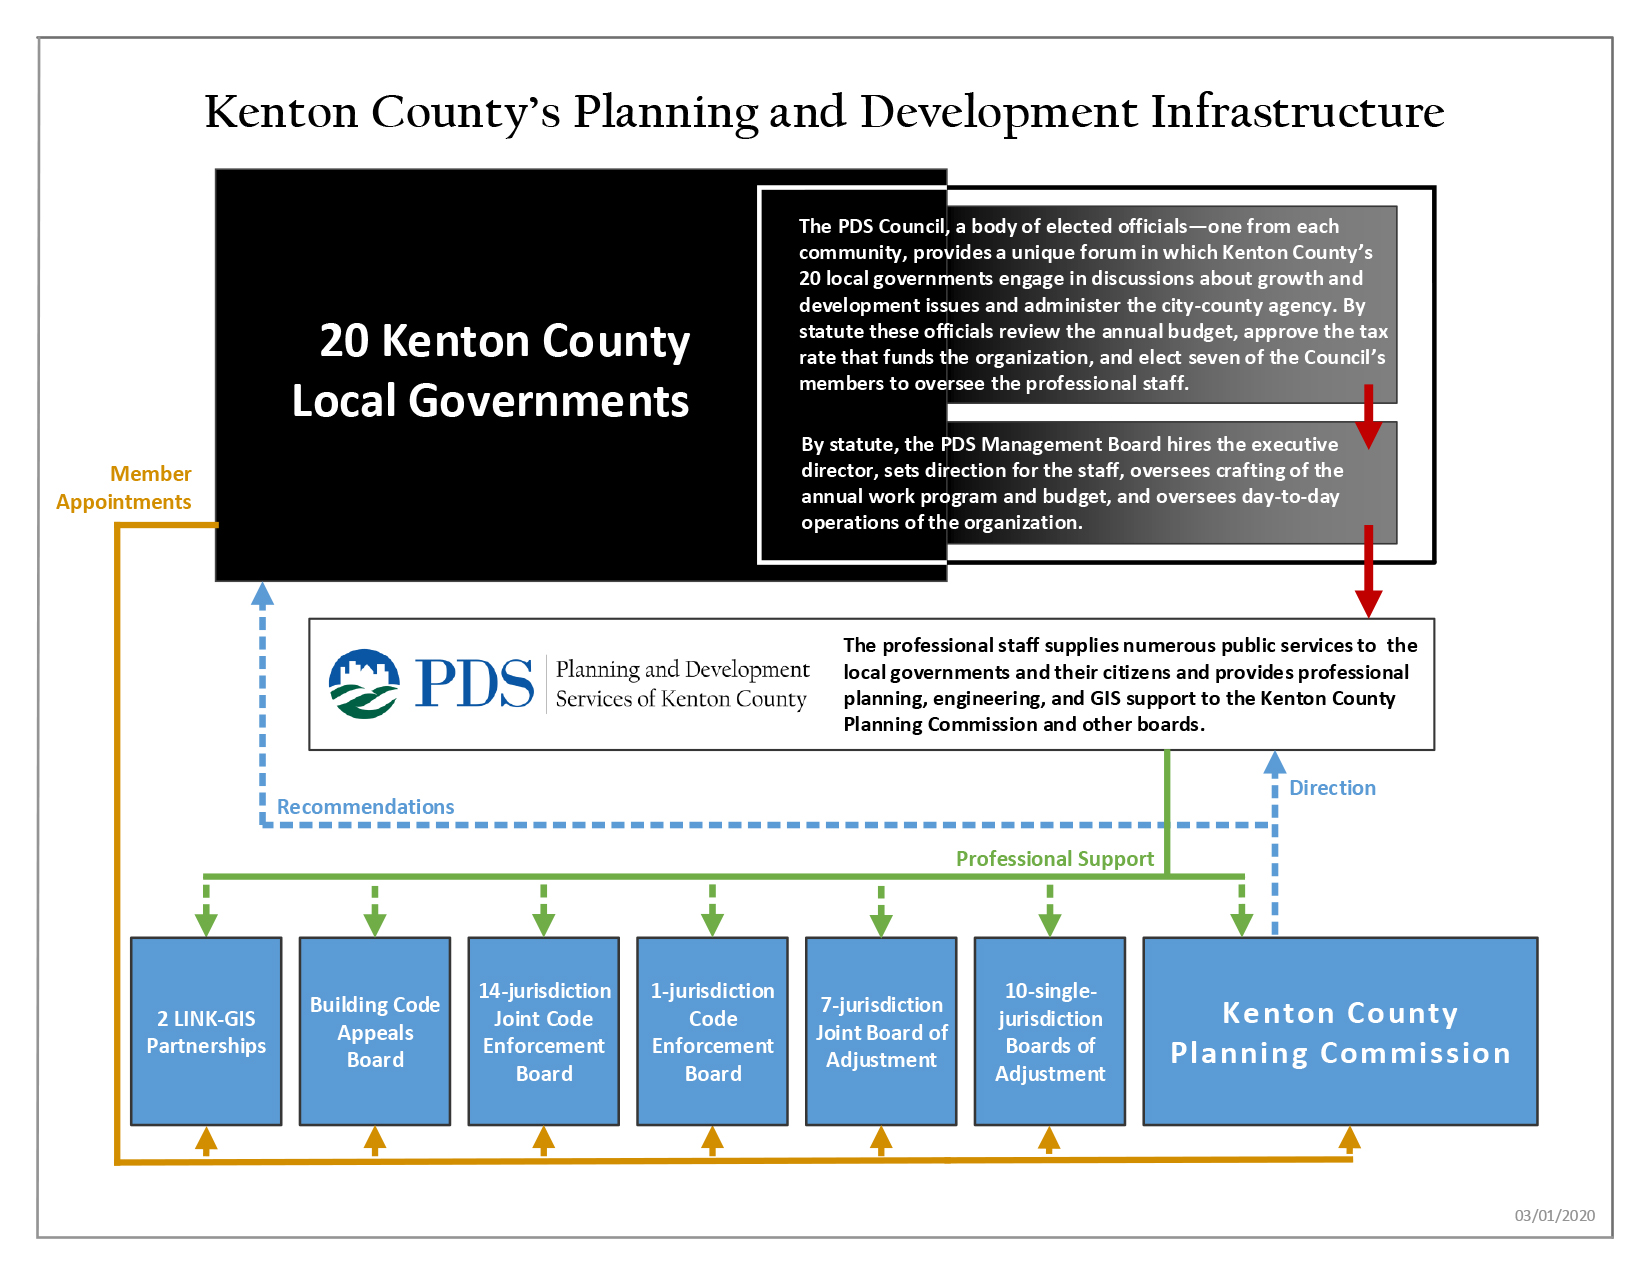 Kenton County Planning Infrastructure Diagram